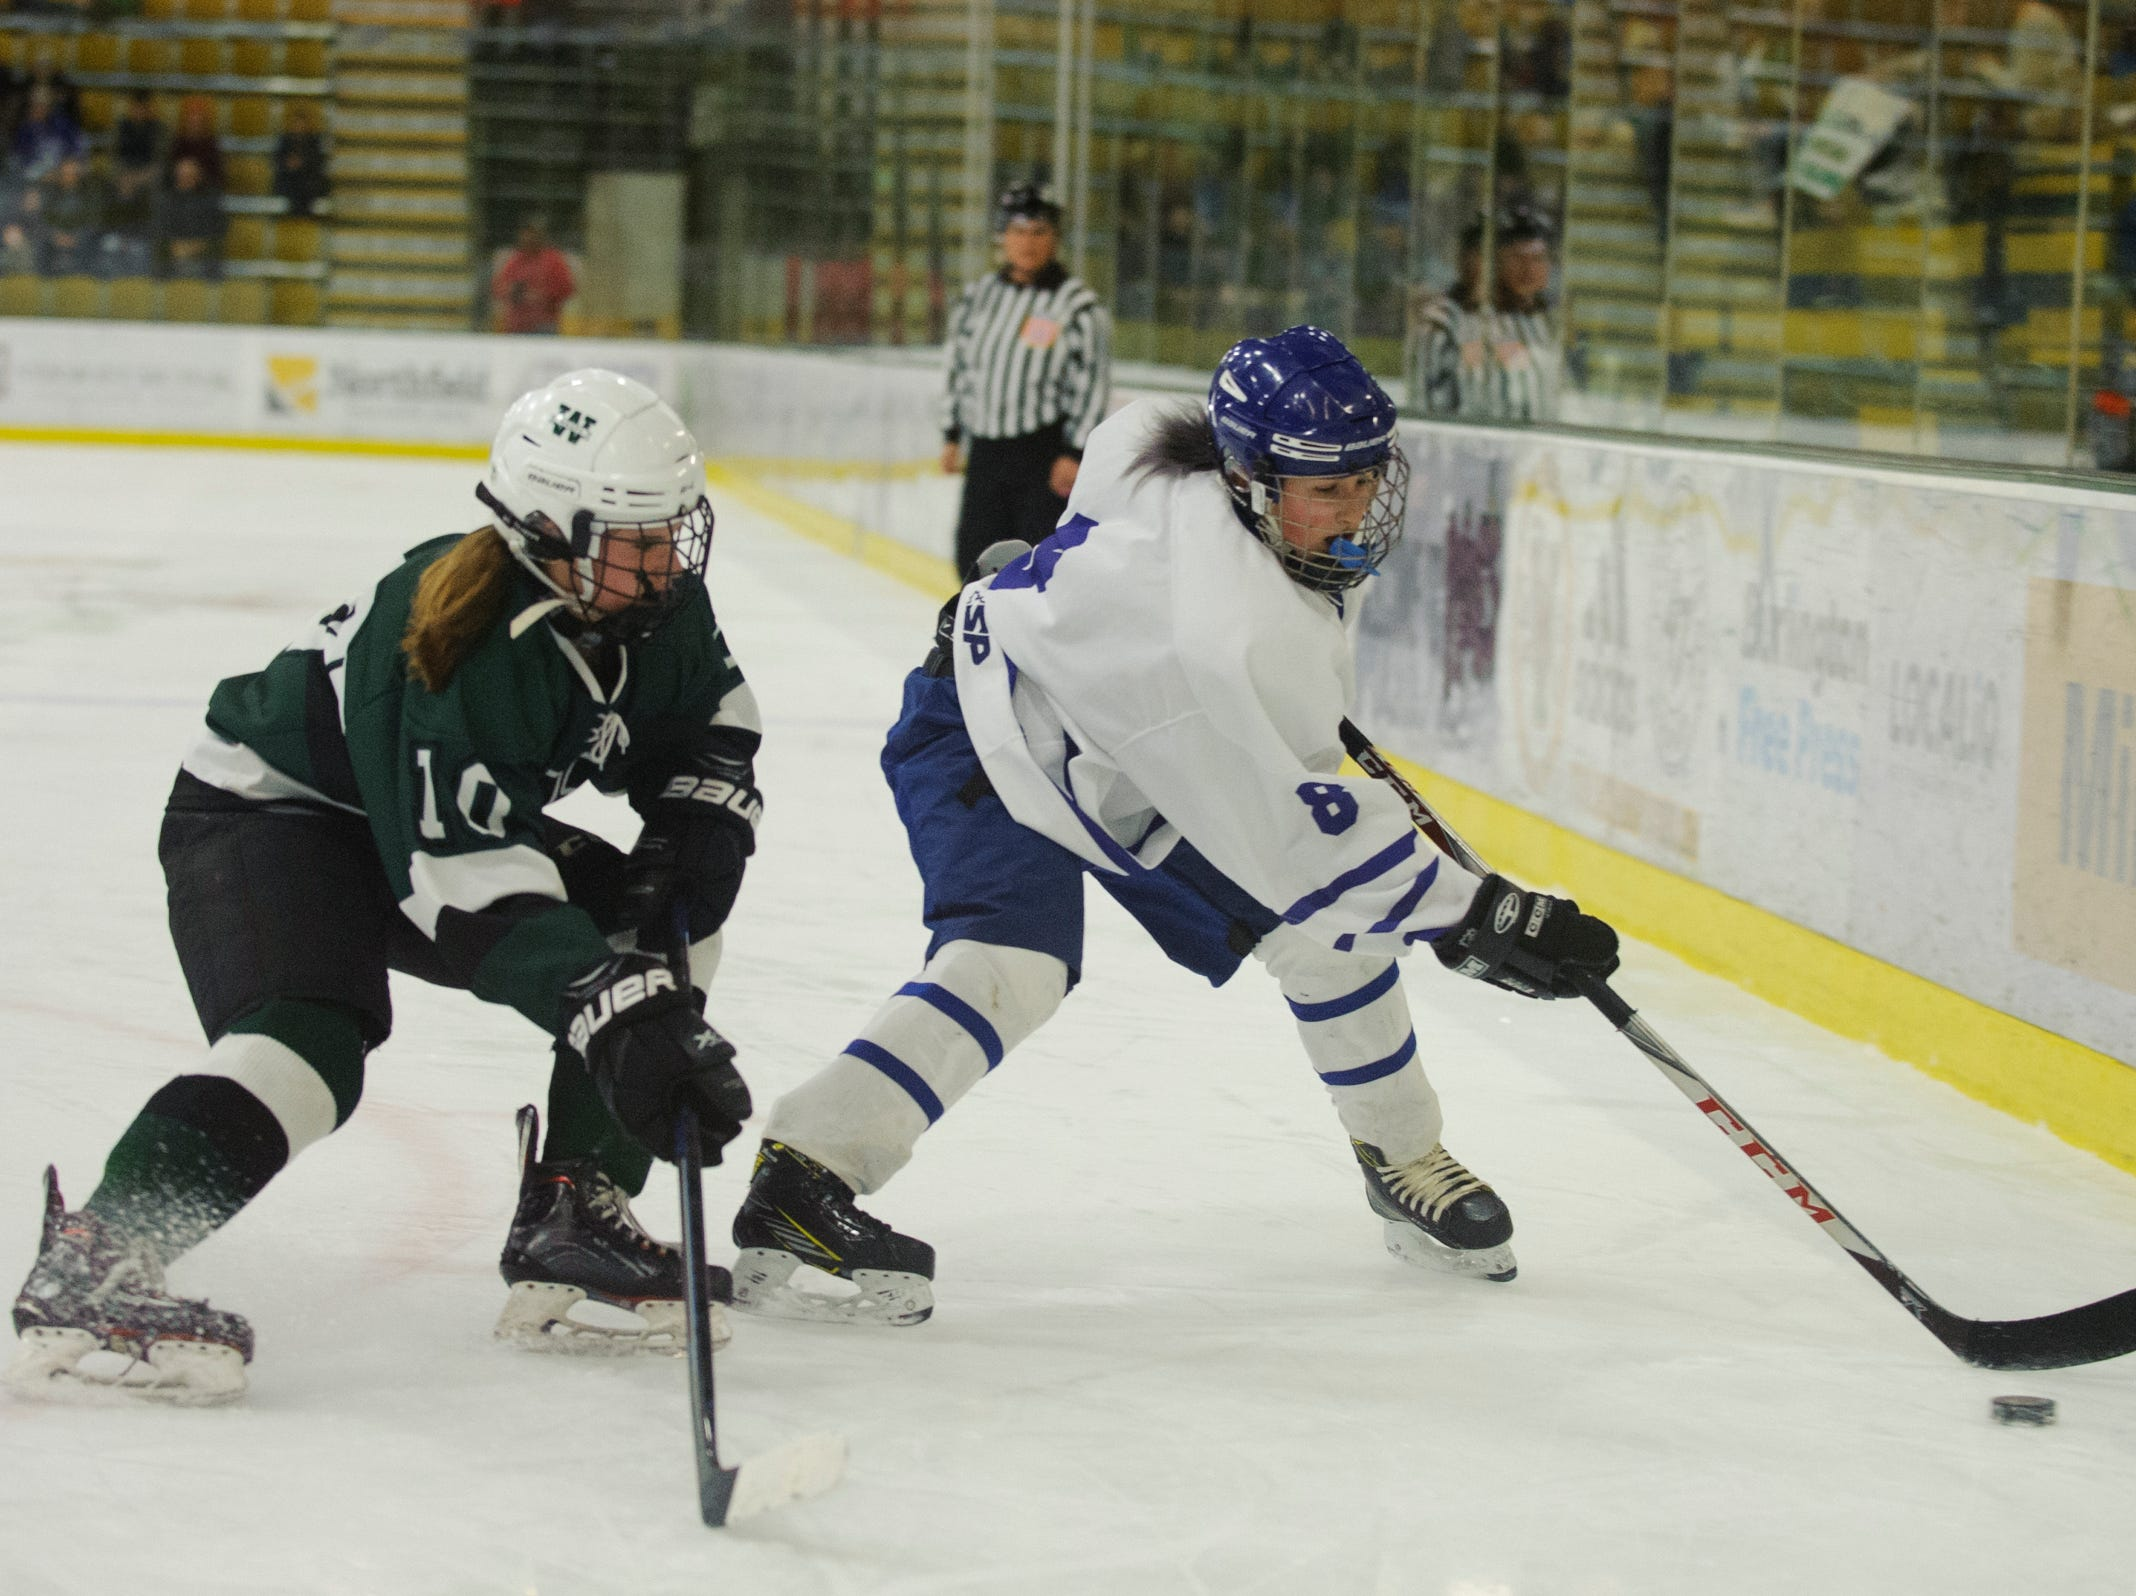 Missisquoi's Kaley Stefaniak (8) skates past Woodstock's Allie Cimis (10) with the puck during the DII girls hockey championship game between the Woodstock Wasps and the Missisquoi Thunderbirds at Gutterson Field House on Thursday night March 14, 2019 in Burlington, Vermont.